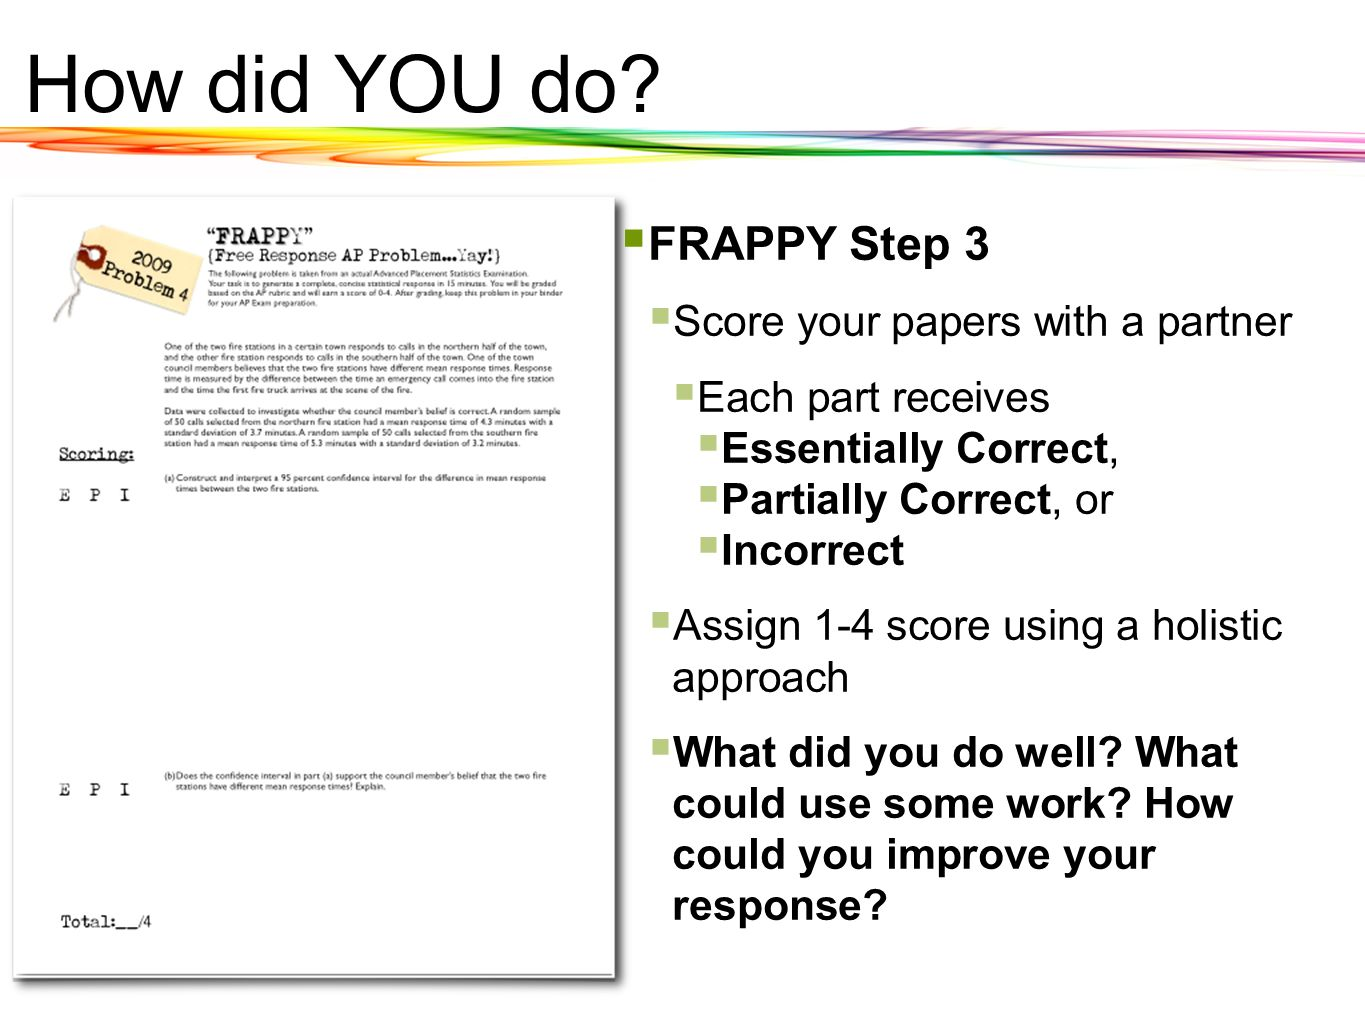 How did YOU do FRAPPY Step 3 Score your papers with a partner